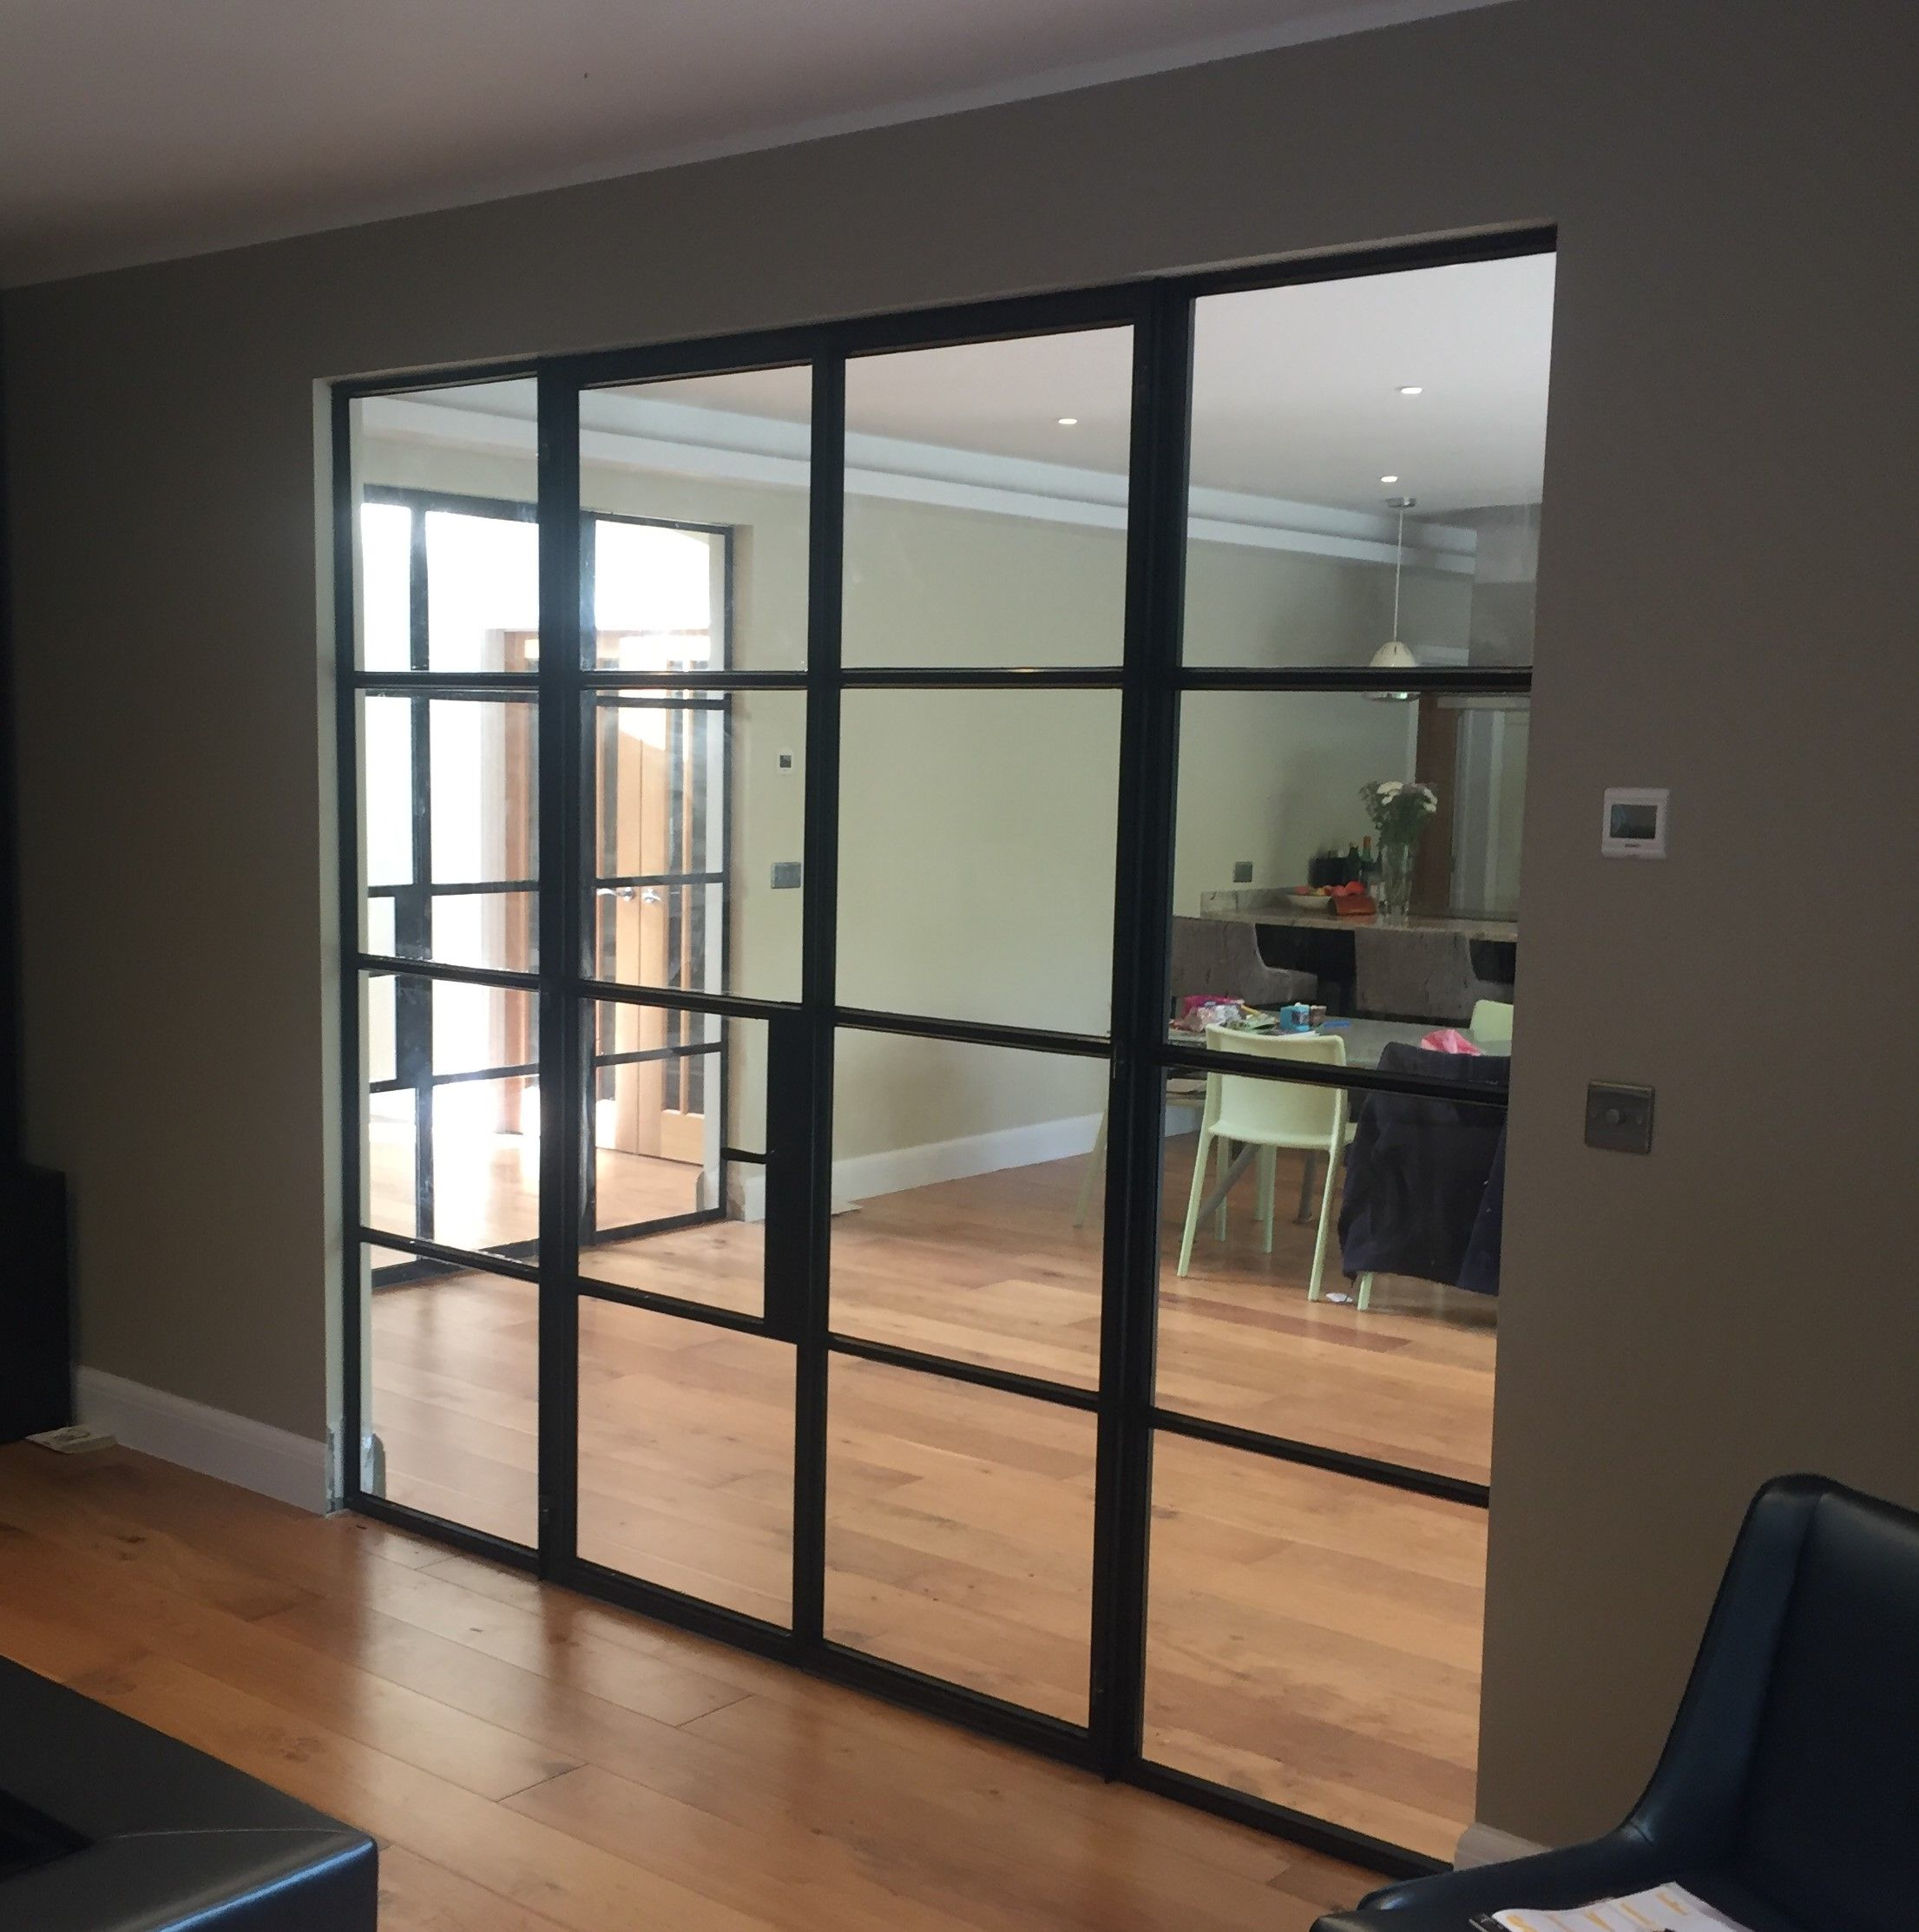 Internal crittall door screen to divide kitchen and living - Doors to separate kitchen from living room ...